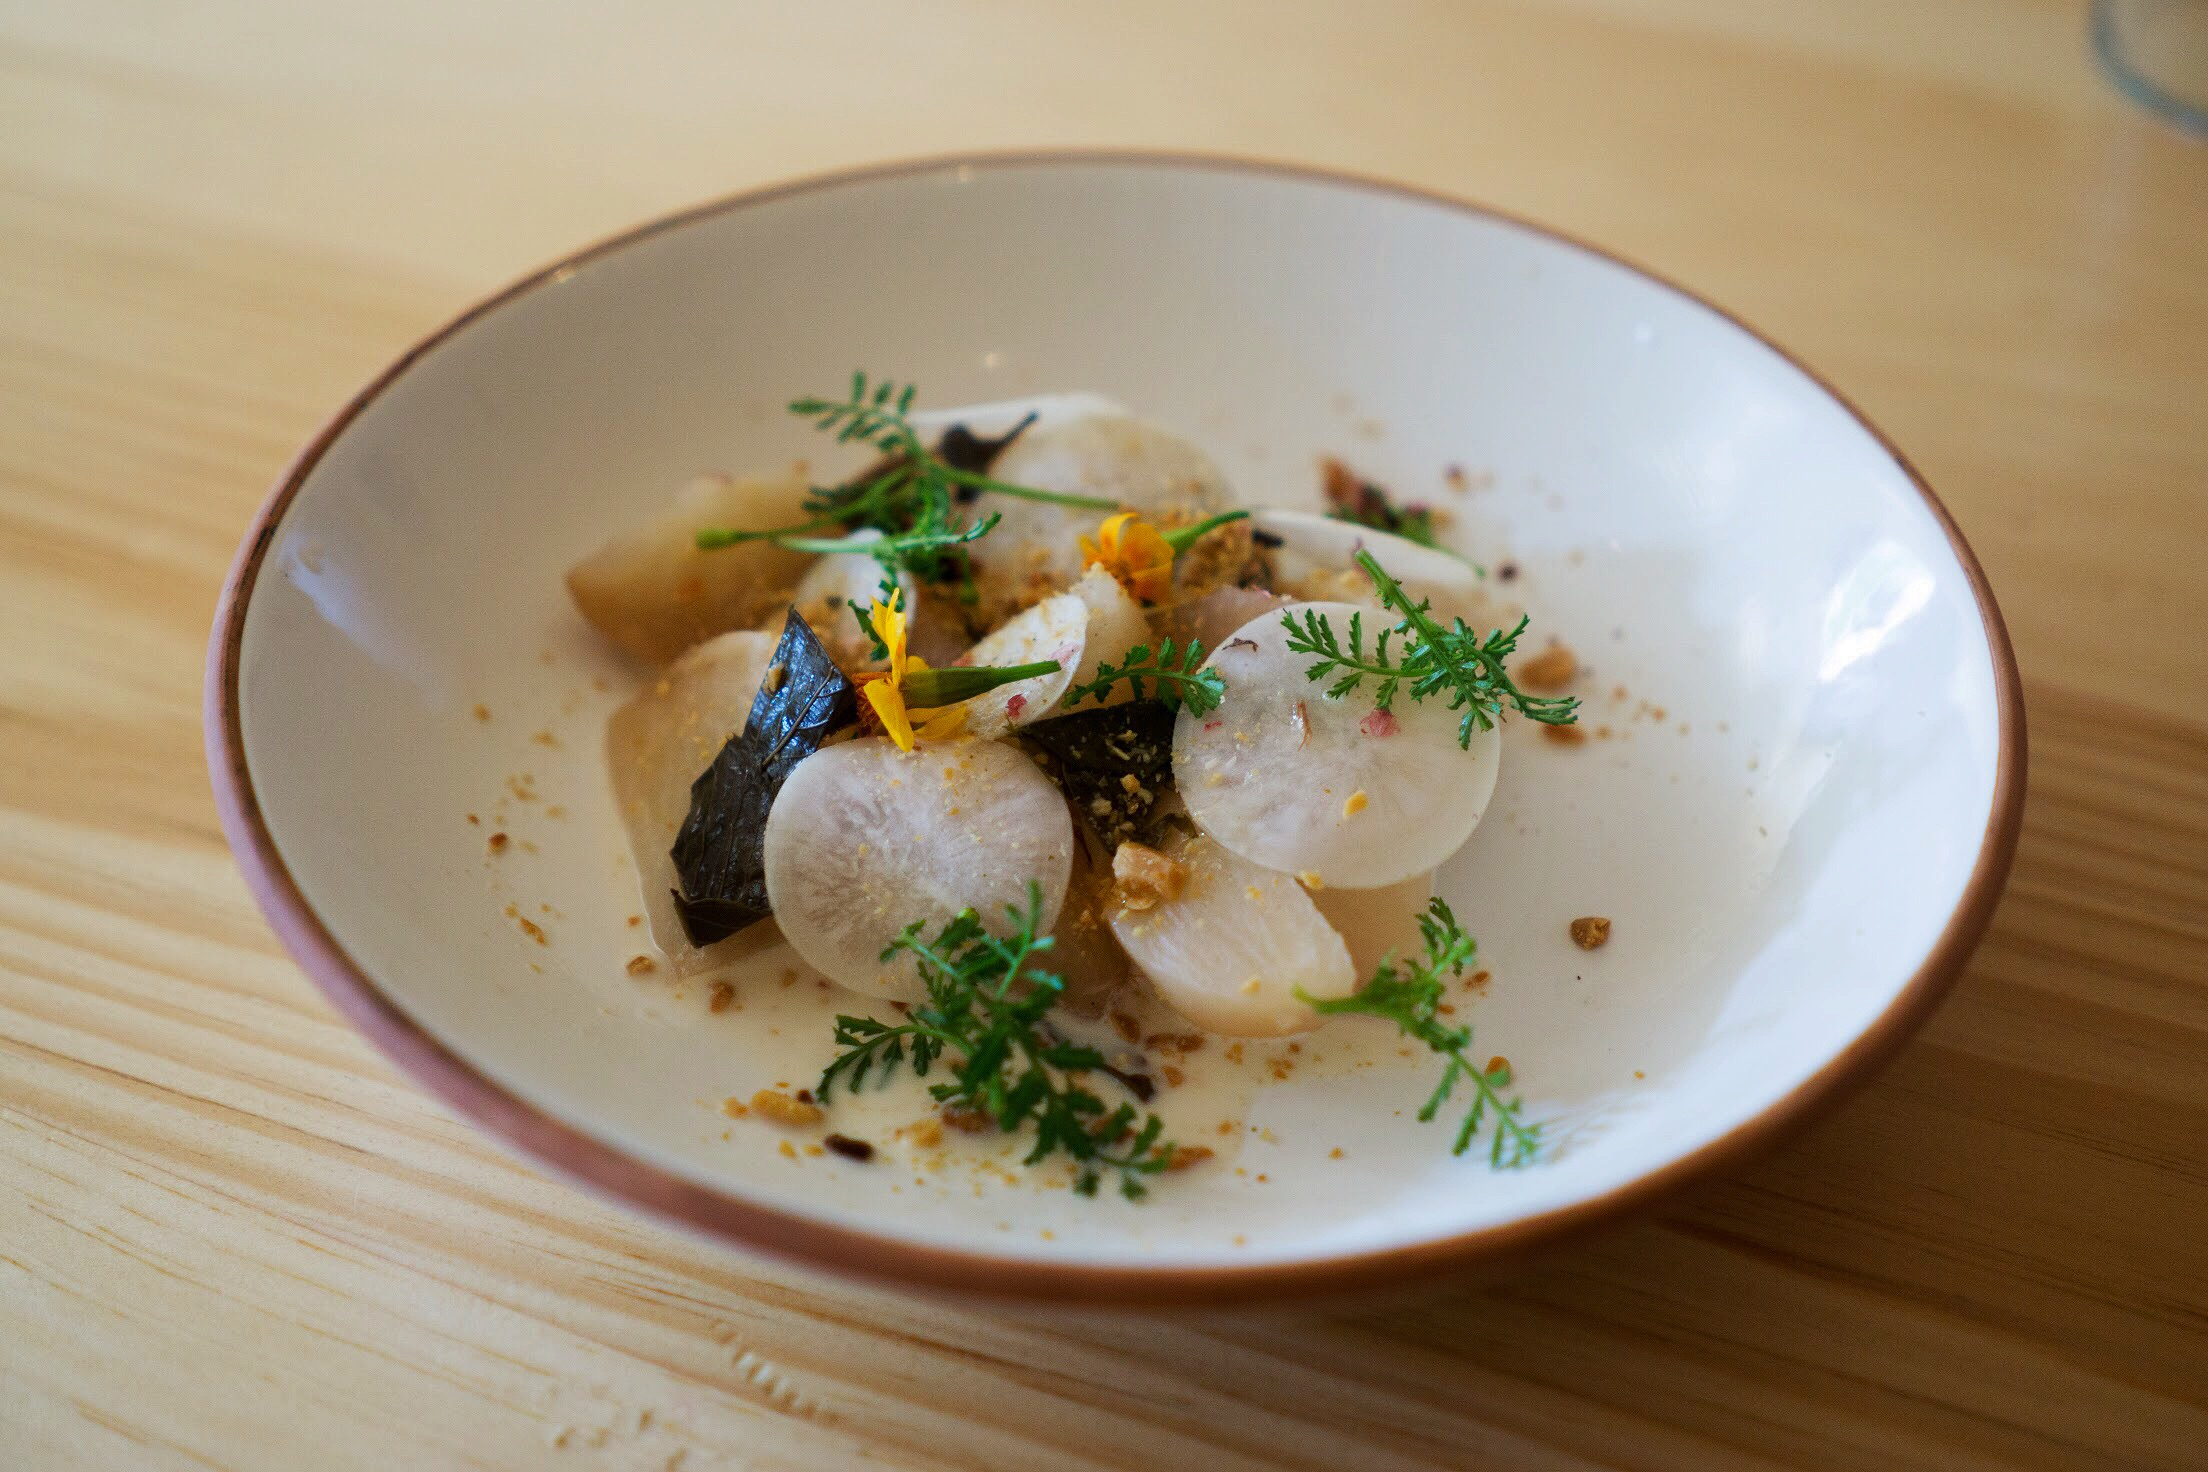 Roasted and marinated turnips, preserved cherry blossom and almond.  Photo by Alycia Chrosniak